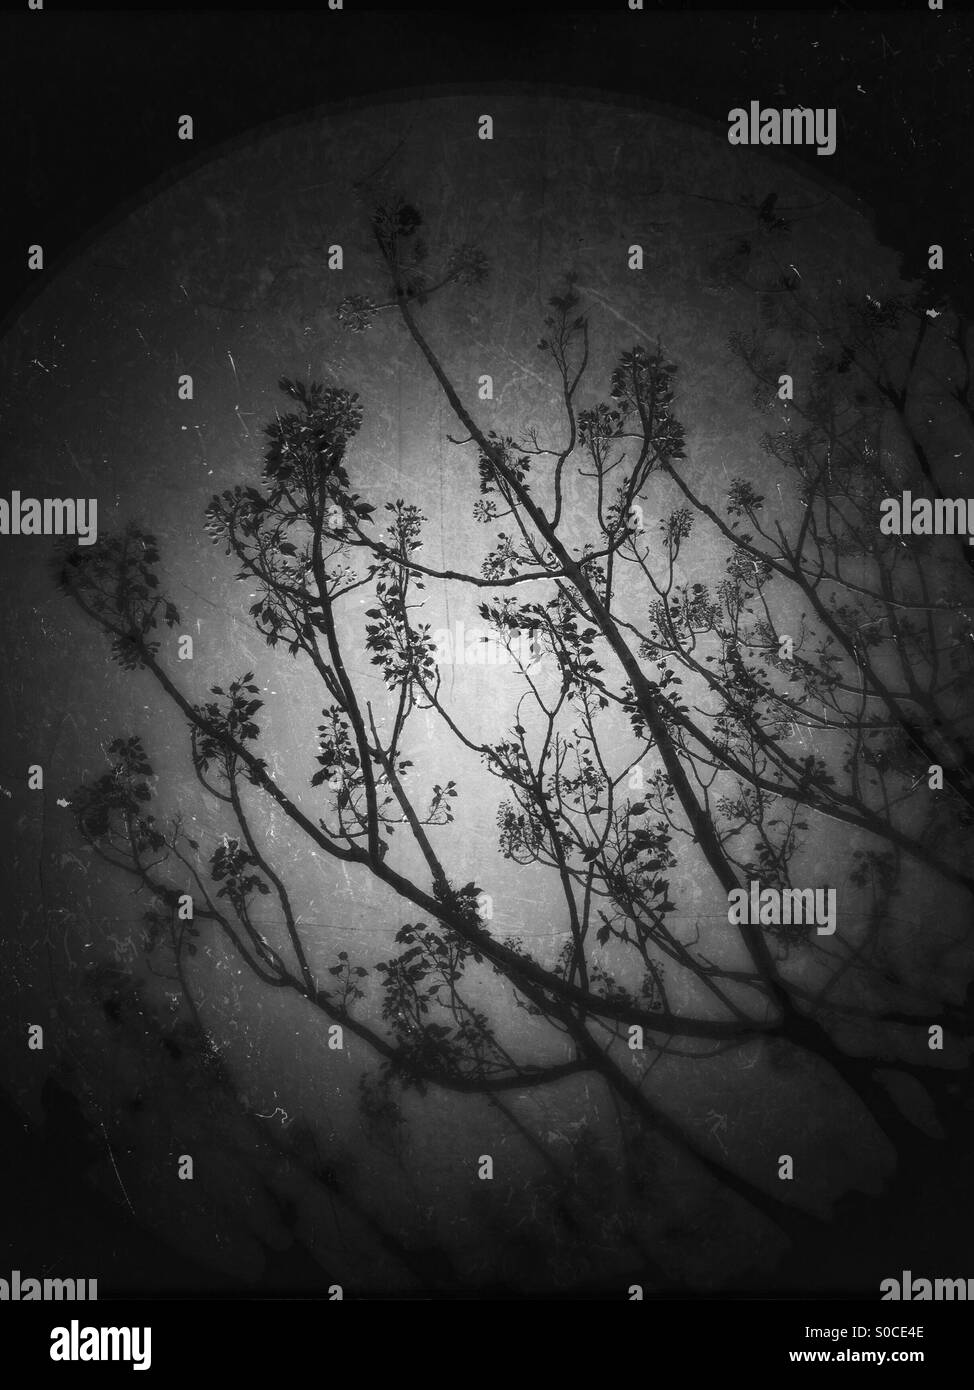 Silhouette of branches, twigs, leaves and flowers on a dark, grungy, distressed moon-like background with a scattering - Stock Image